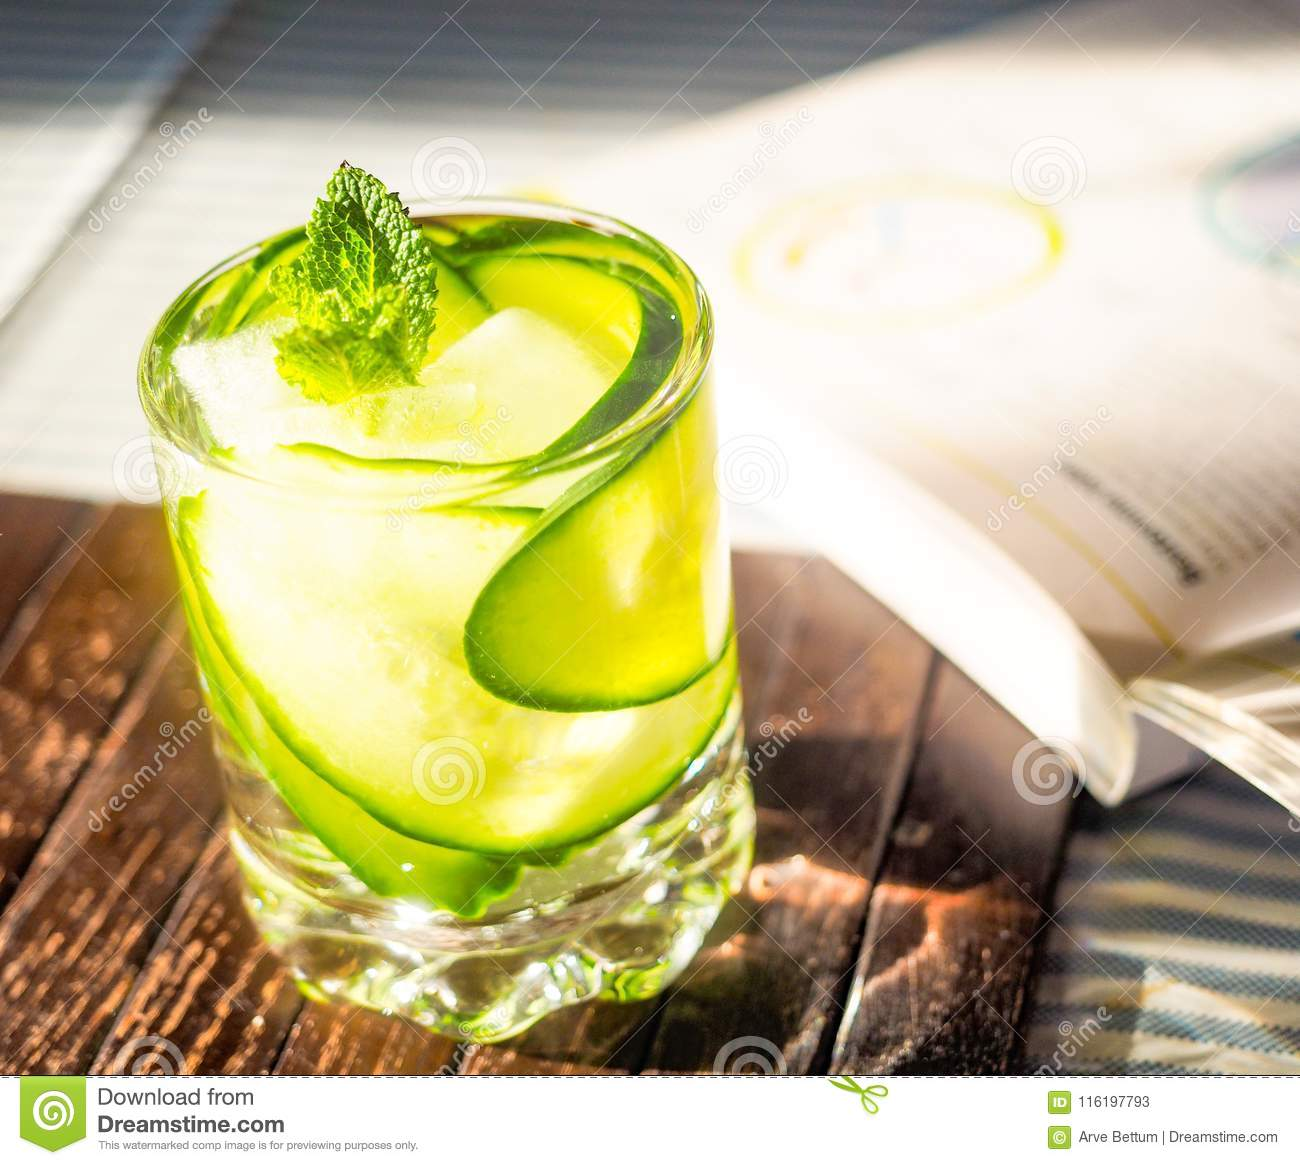 Cucumber drink on book